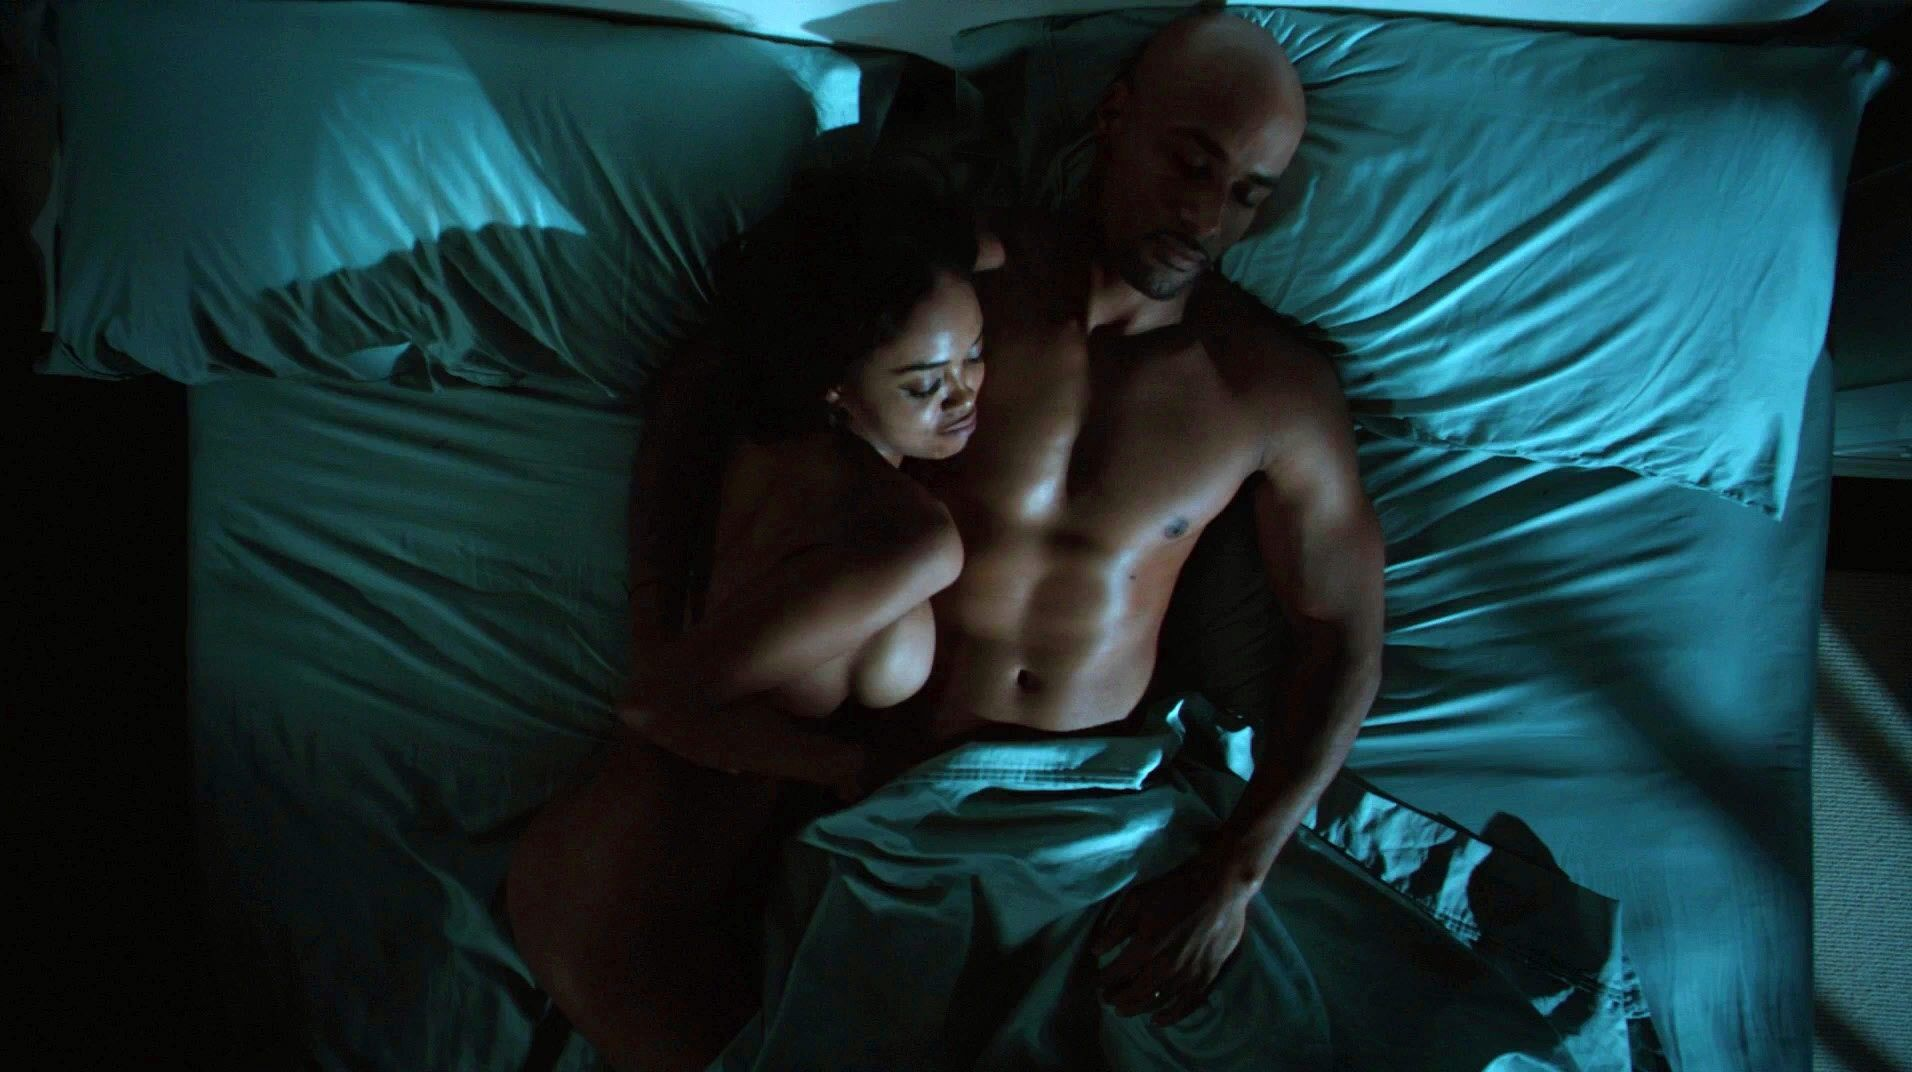 kat-graham-naked-and-having-butt-sex-naked-sexy-mature-women-in-lingerie